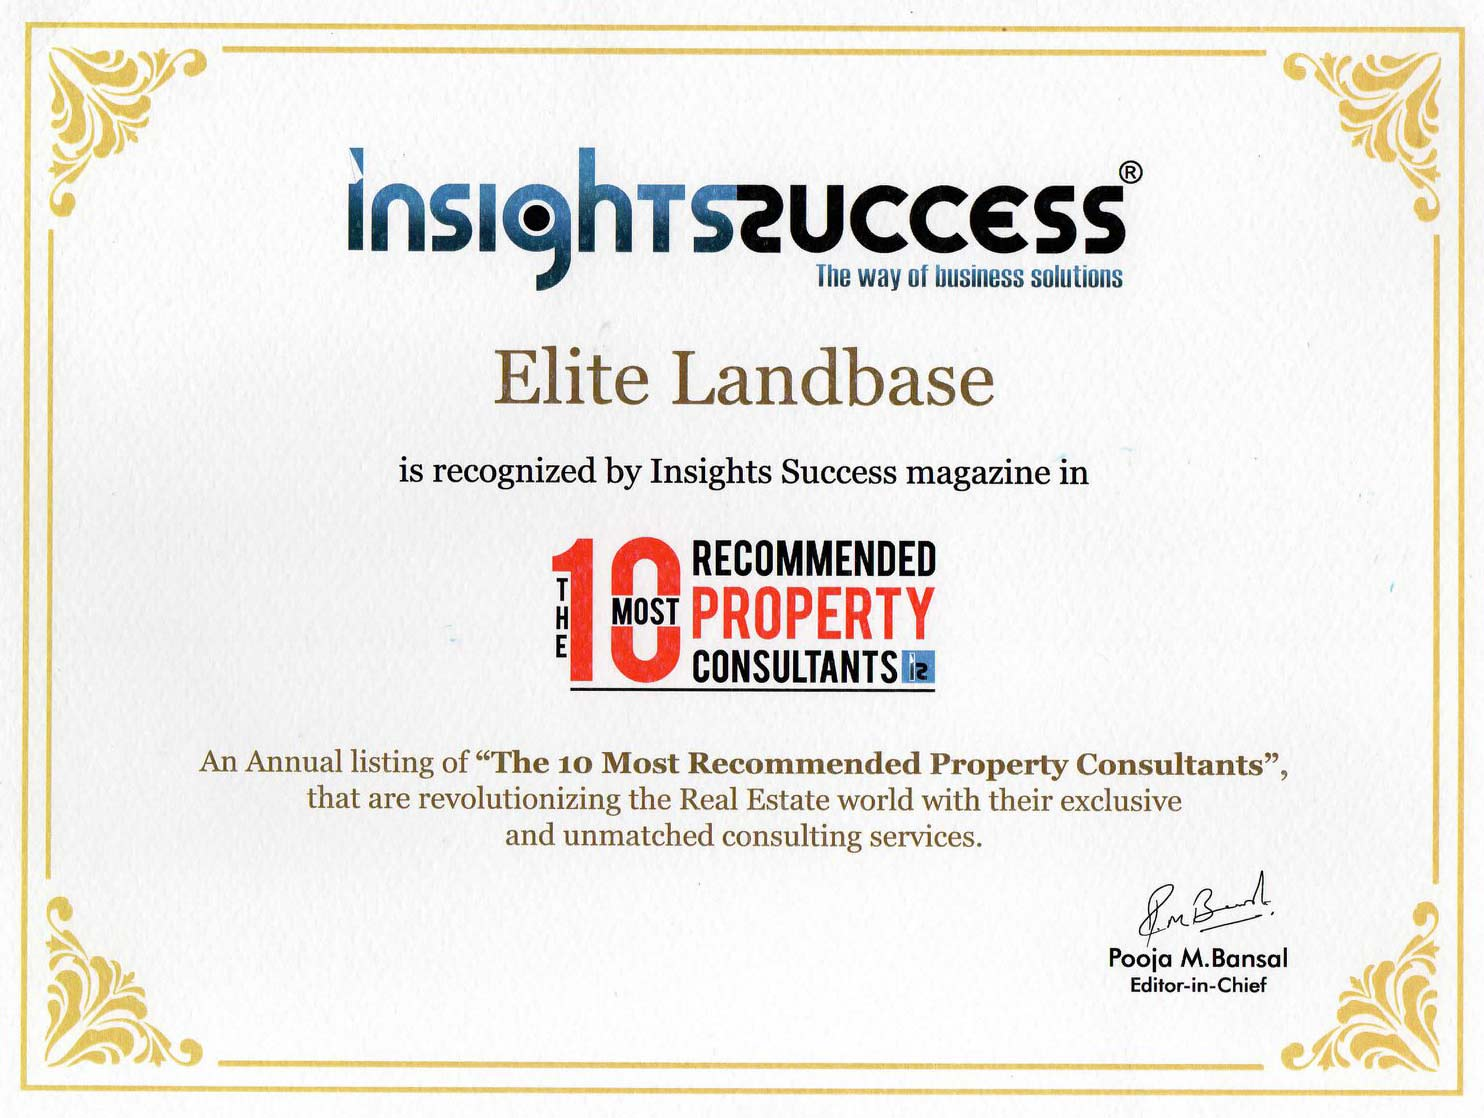 Certificate of Top Consultant